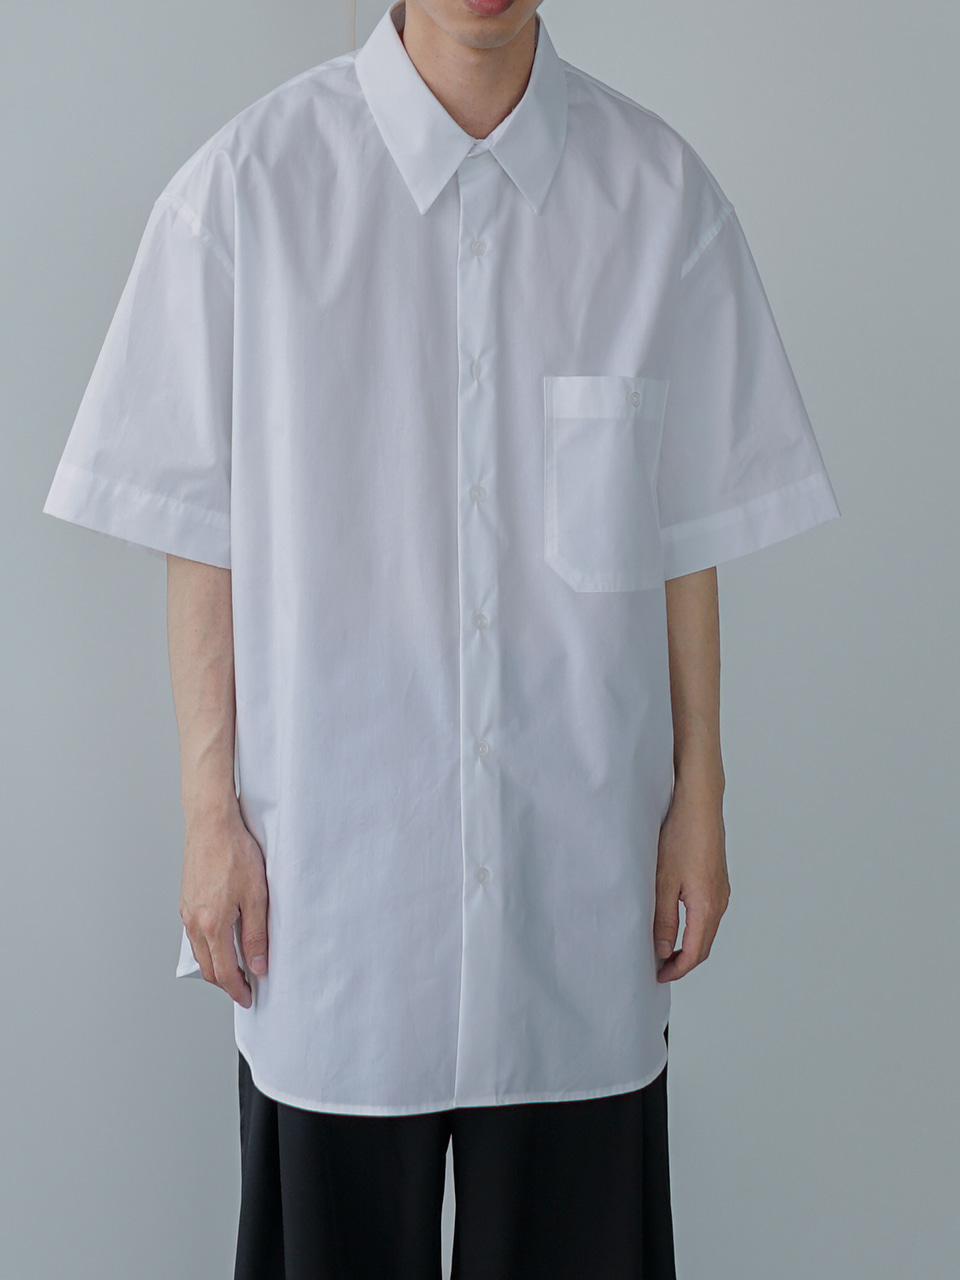 Down Oversized Half Shirt (3color)